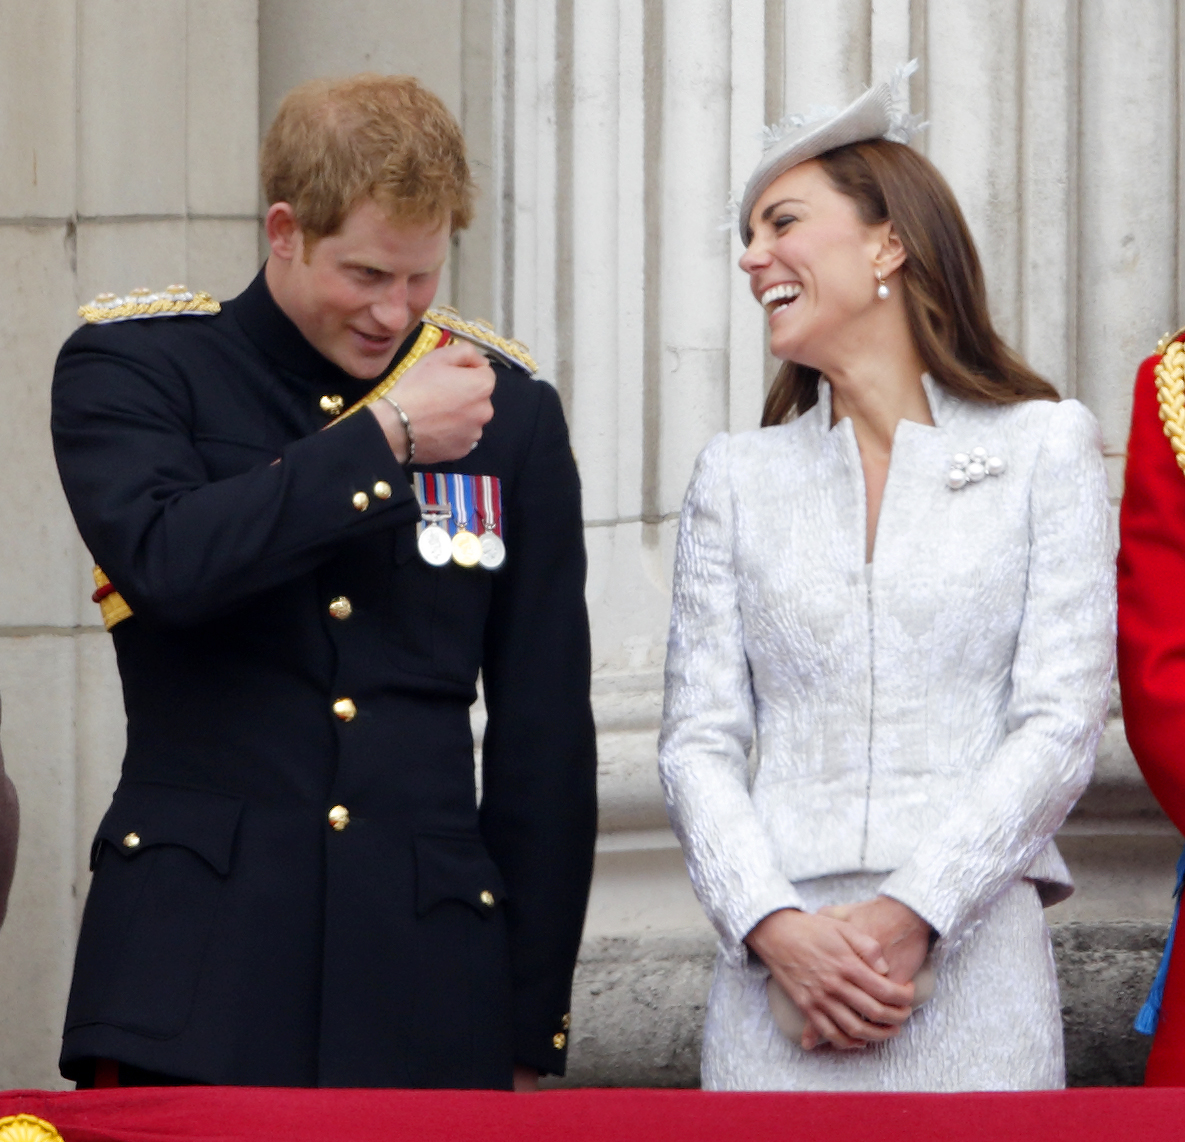 <strong>Jovial in Jacquard </strong>Prince Harry and Catherine, Duchess of Cambridge watch the fly-past from the balcony of Buckingham Palace during Trooping the Colour, Queen Elizabeth II's Birthday Parade on June 14, 2014 in London.